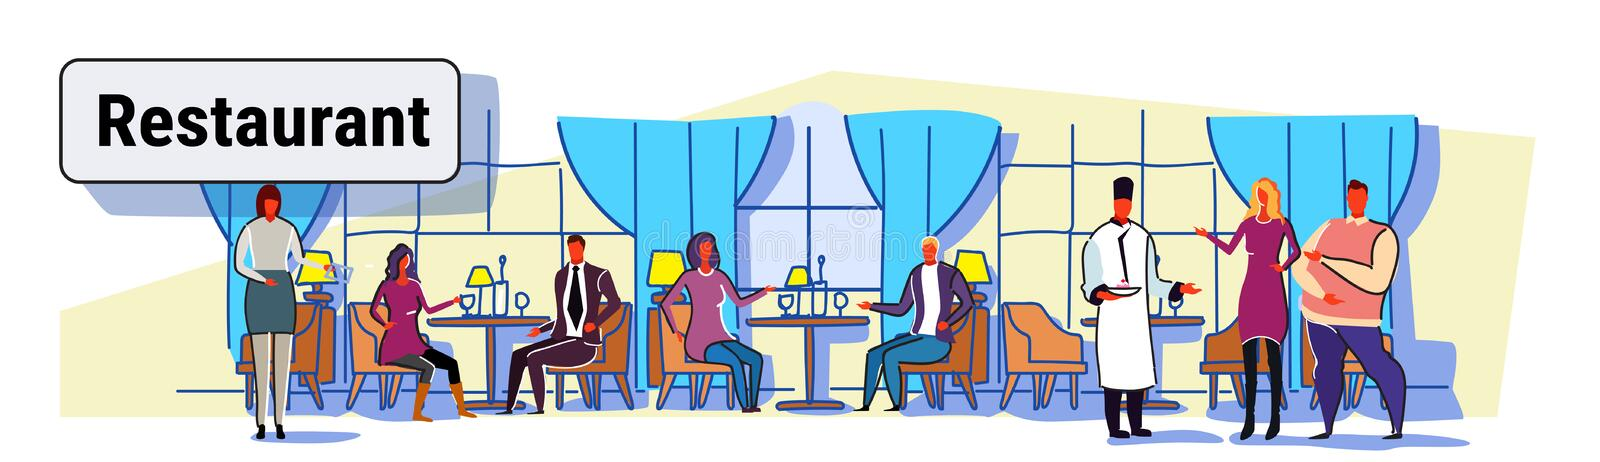 People visitors sitting at restaurant tables waiters showing hospitality and serving guests modern cafe interior design. Colorful sketch flow style horizontal vector illustration